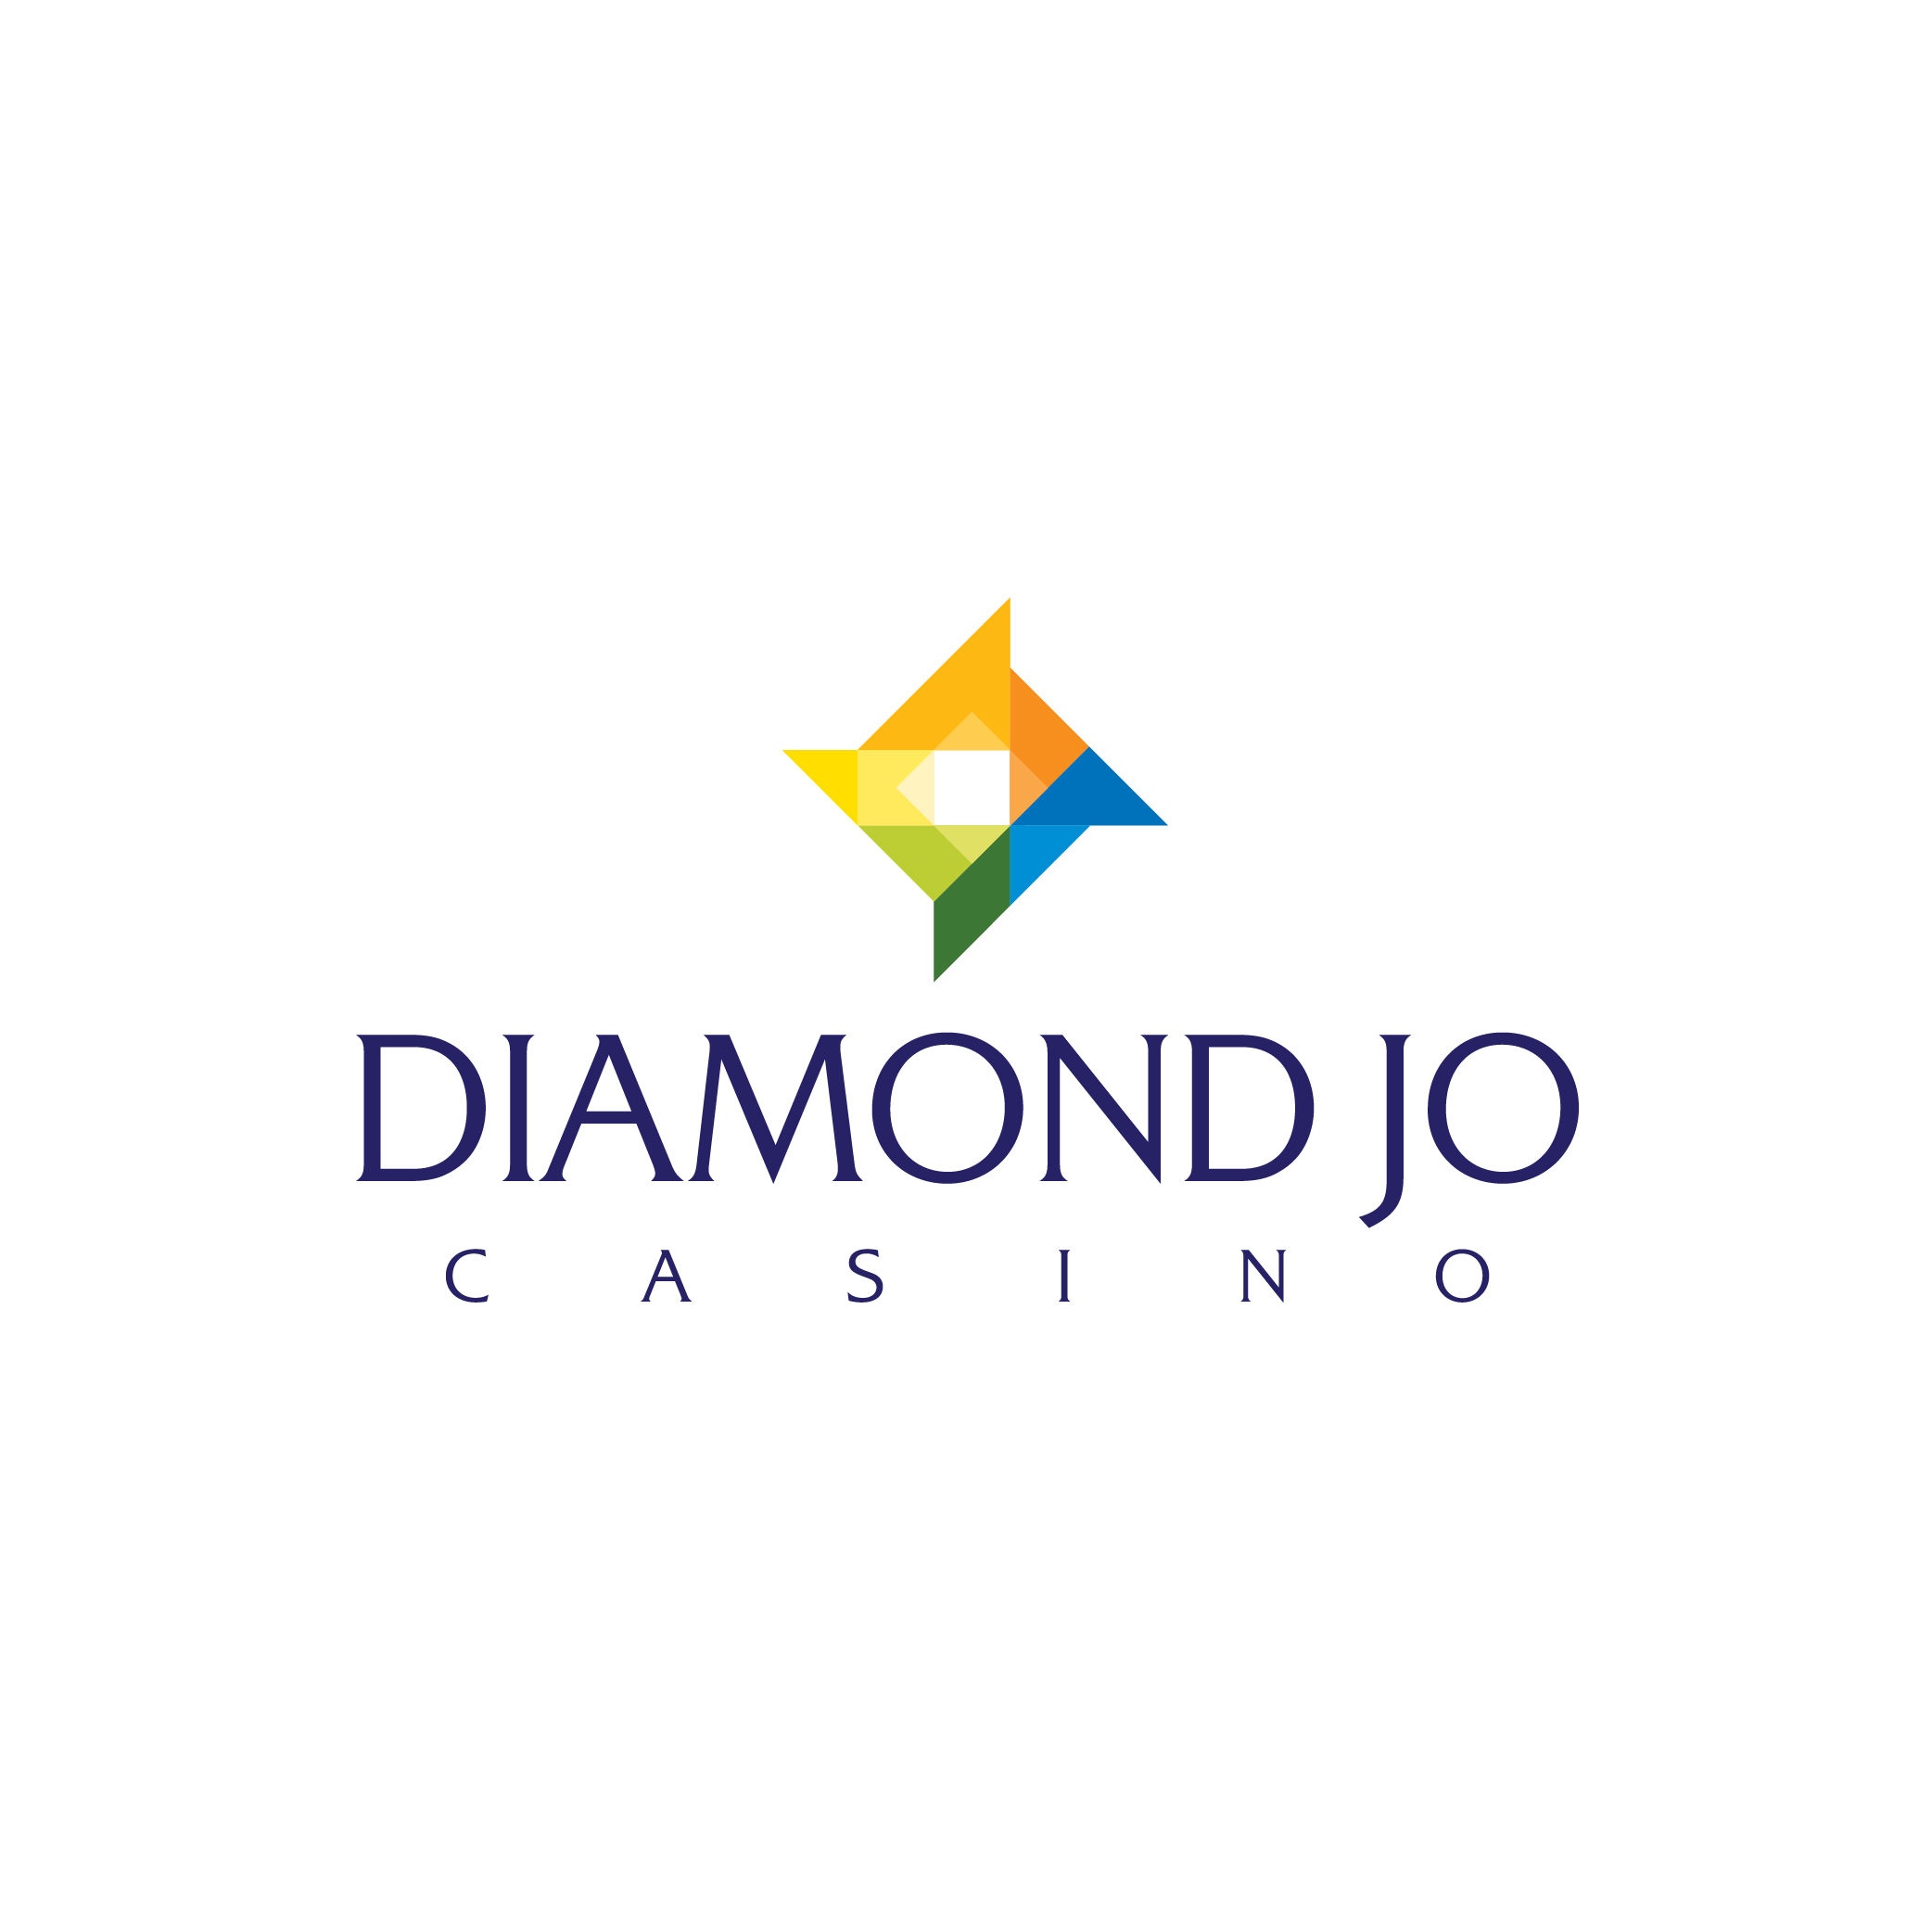 Community_Partner_Logos_Diamond_Jo.png